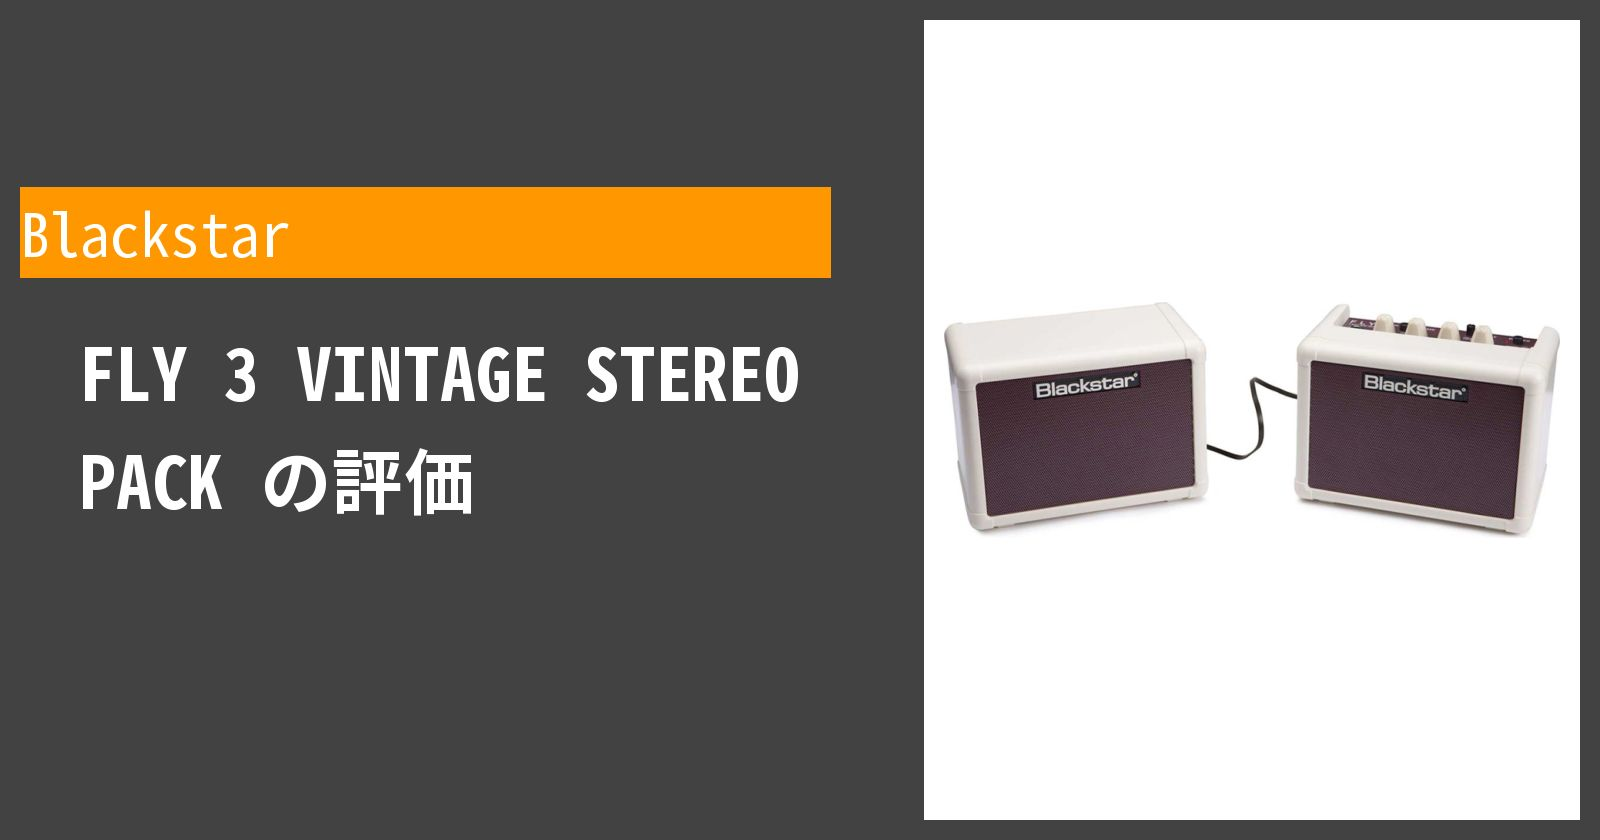 FLY 3 VINTAGE STEREO PACKを徹底評価